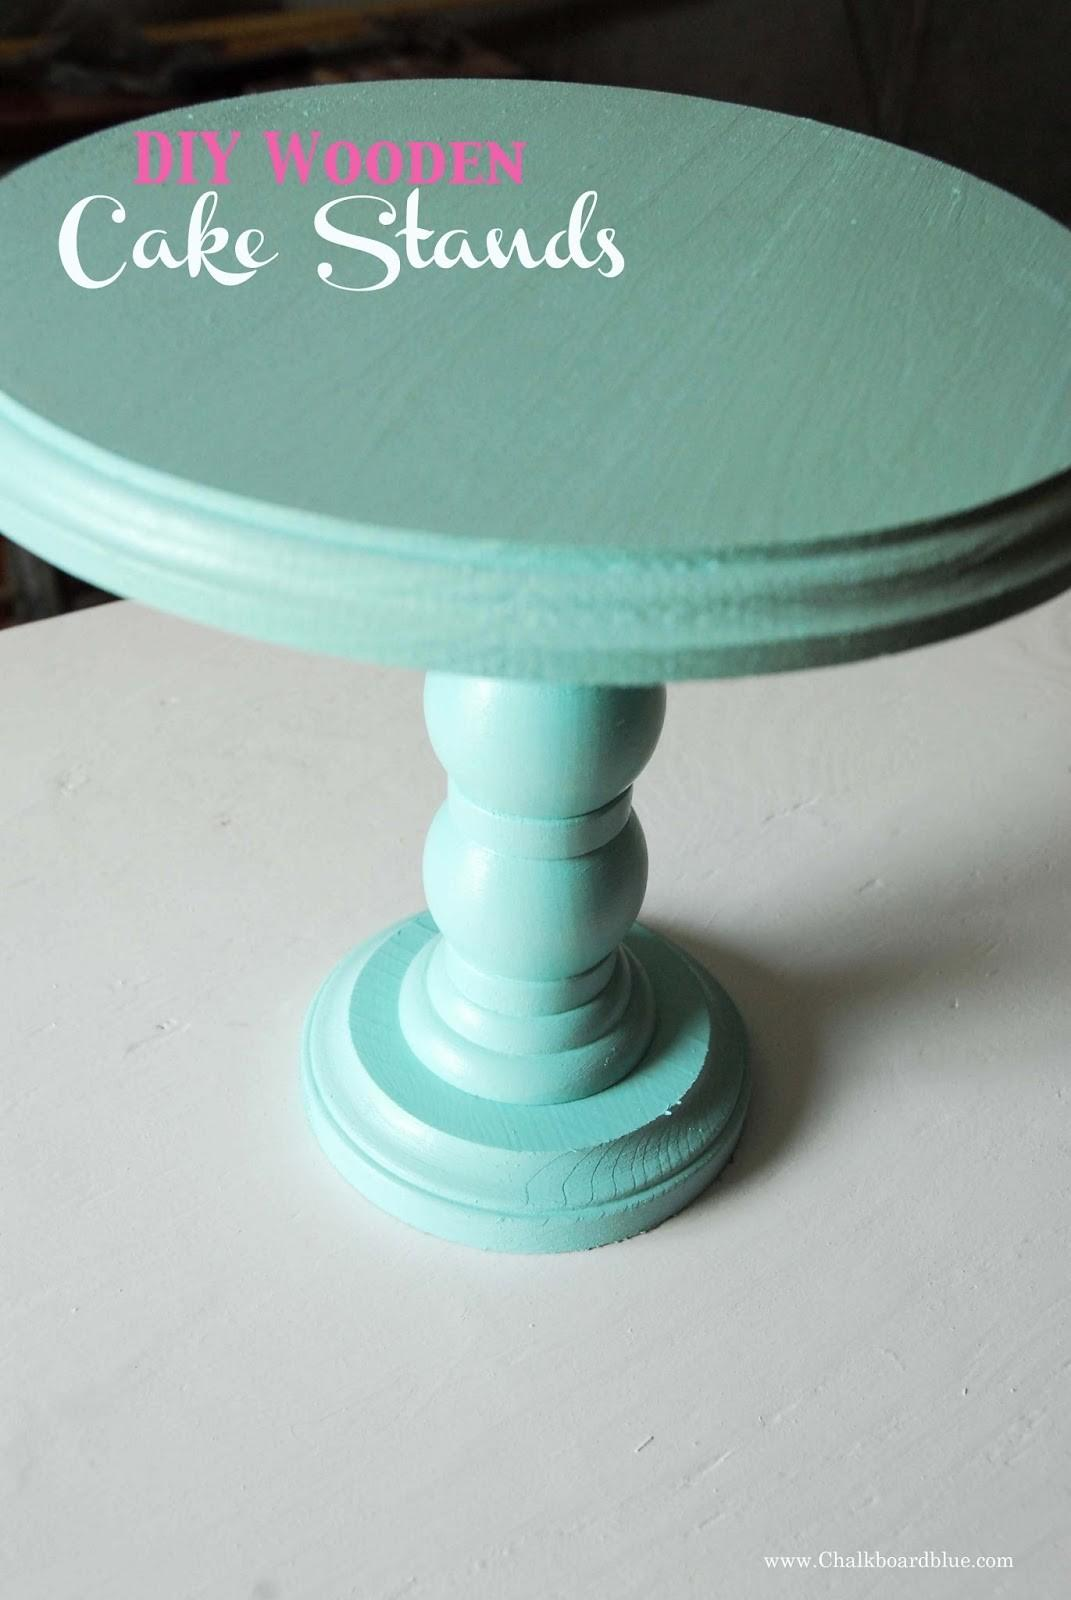 Chalkboard Blue Diy Wooden Cake Stands